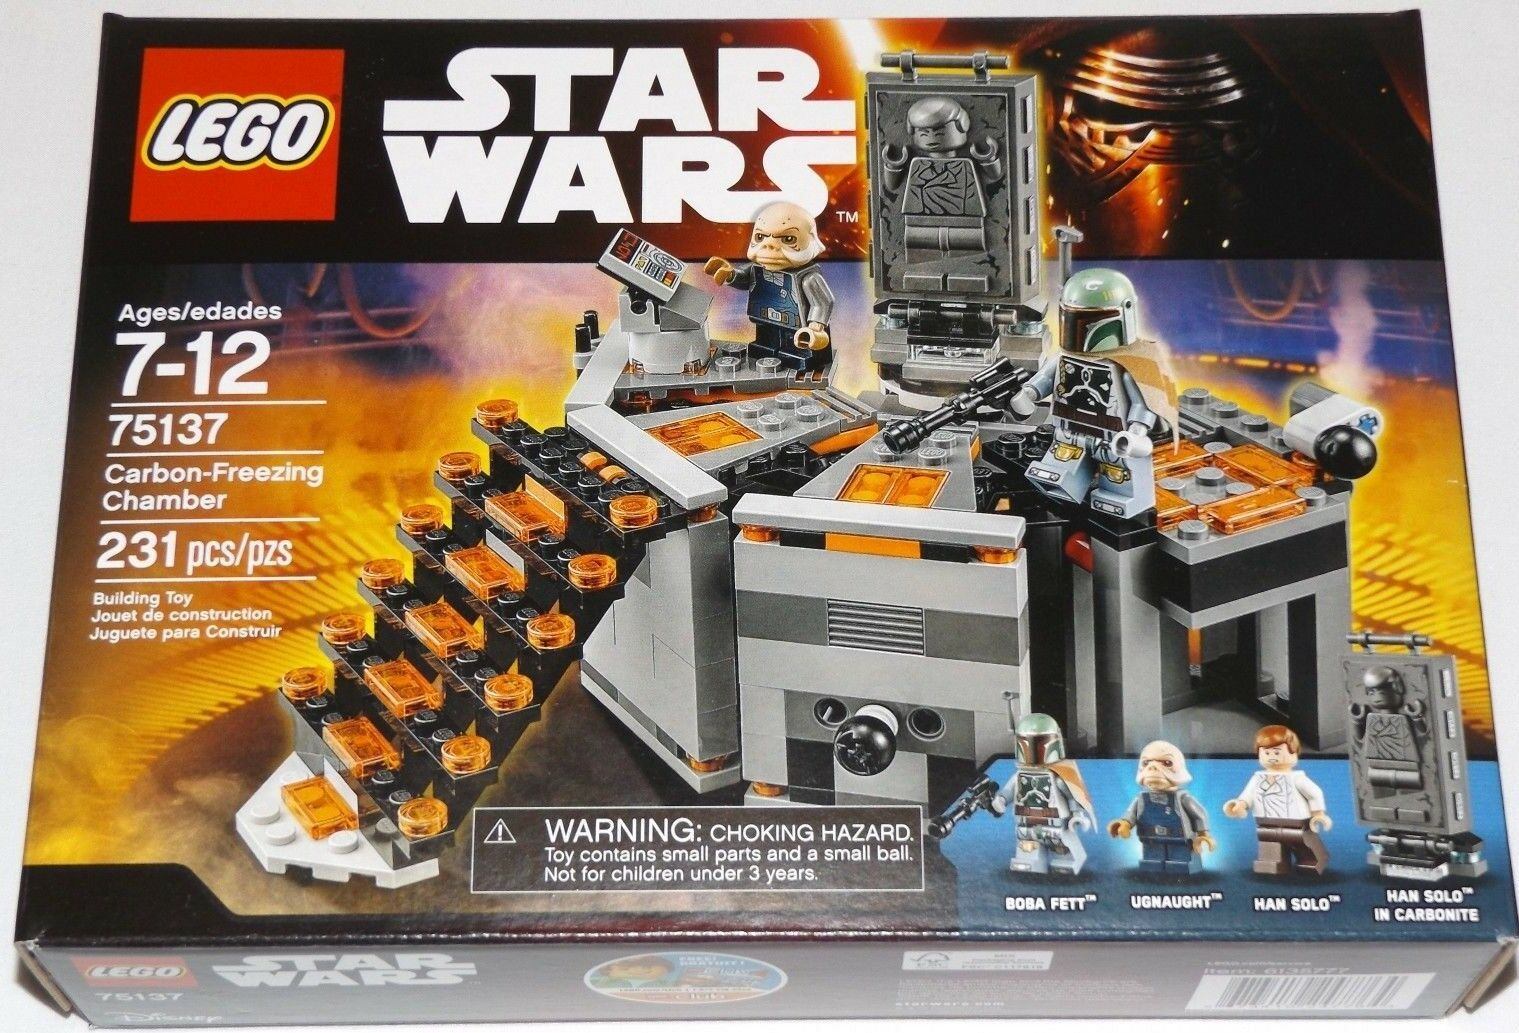 LEGO 75137 Star Wars Carbon-Freezing Chamber Boba Fett Ugnaught Han Solo